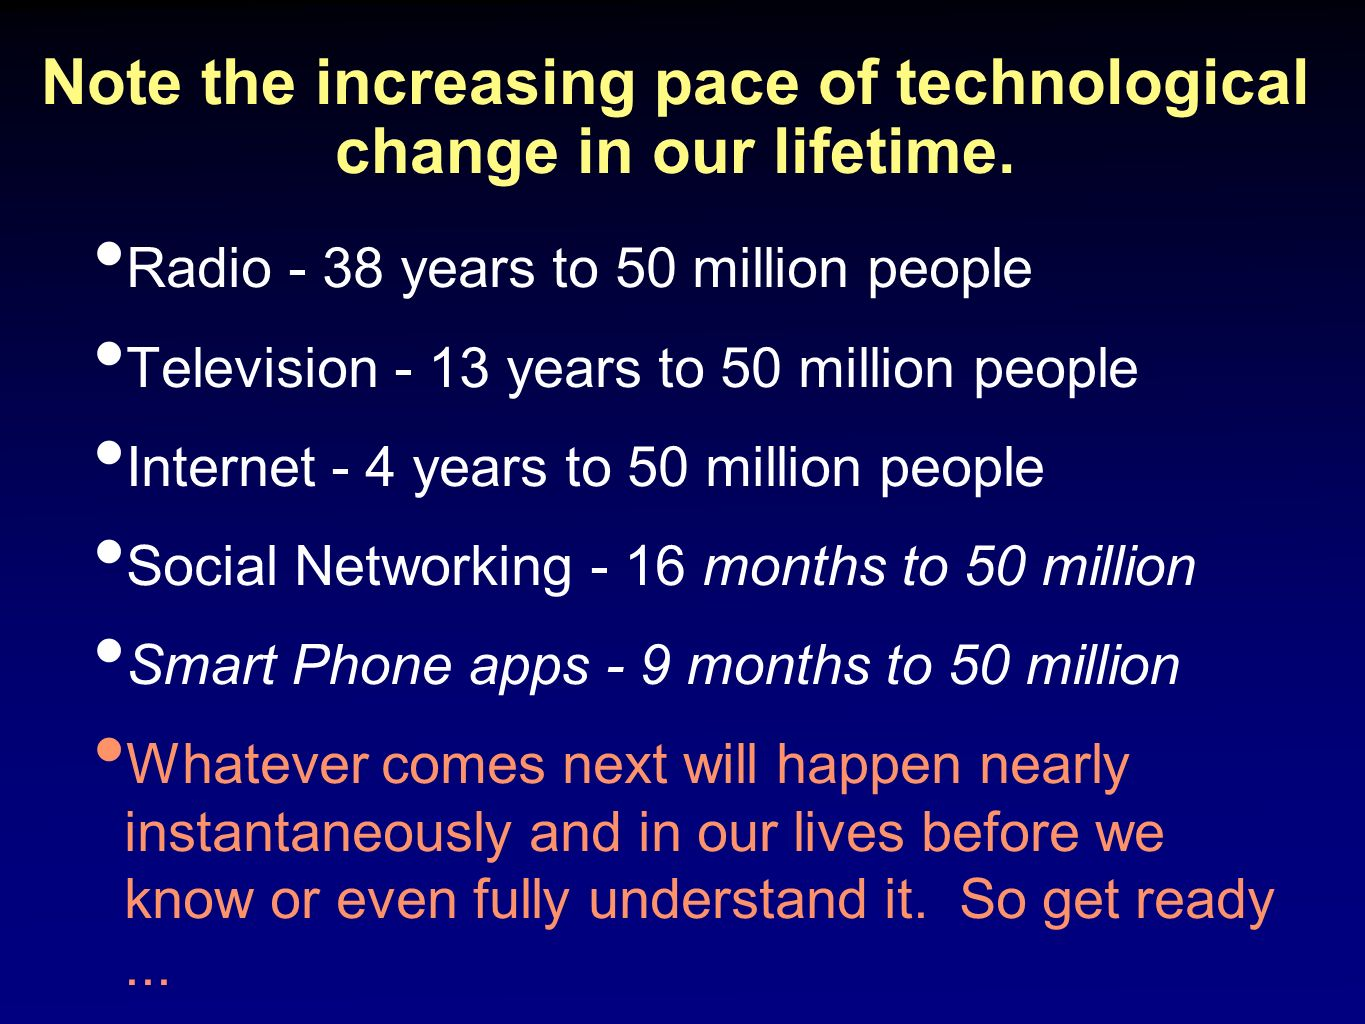 Note the increasing pace of technological change in our lifetime. Radio - 38 years to 50 million people Television - 13 years to 50 million people Int